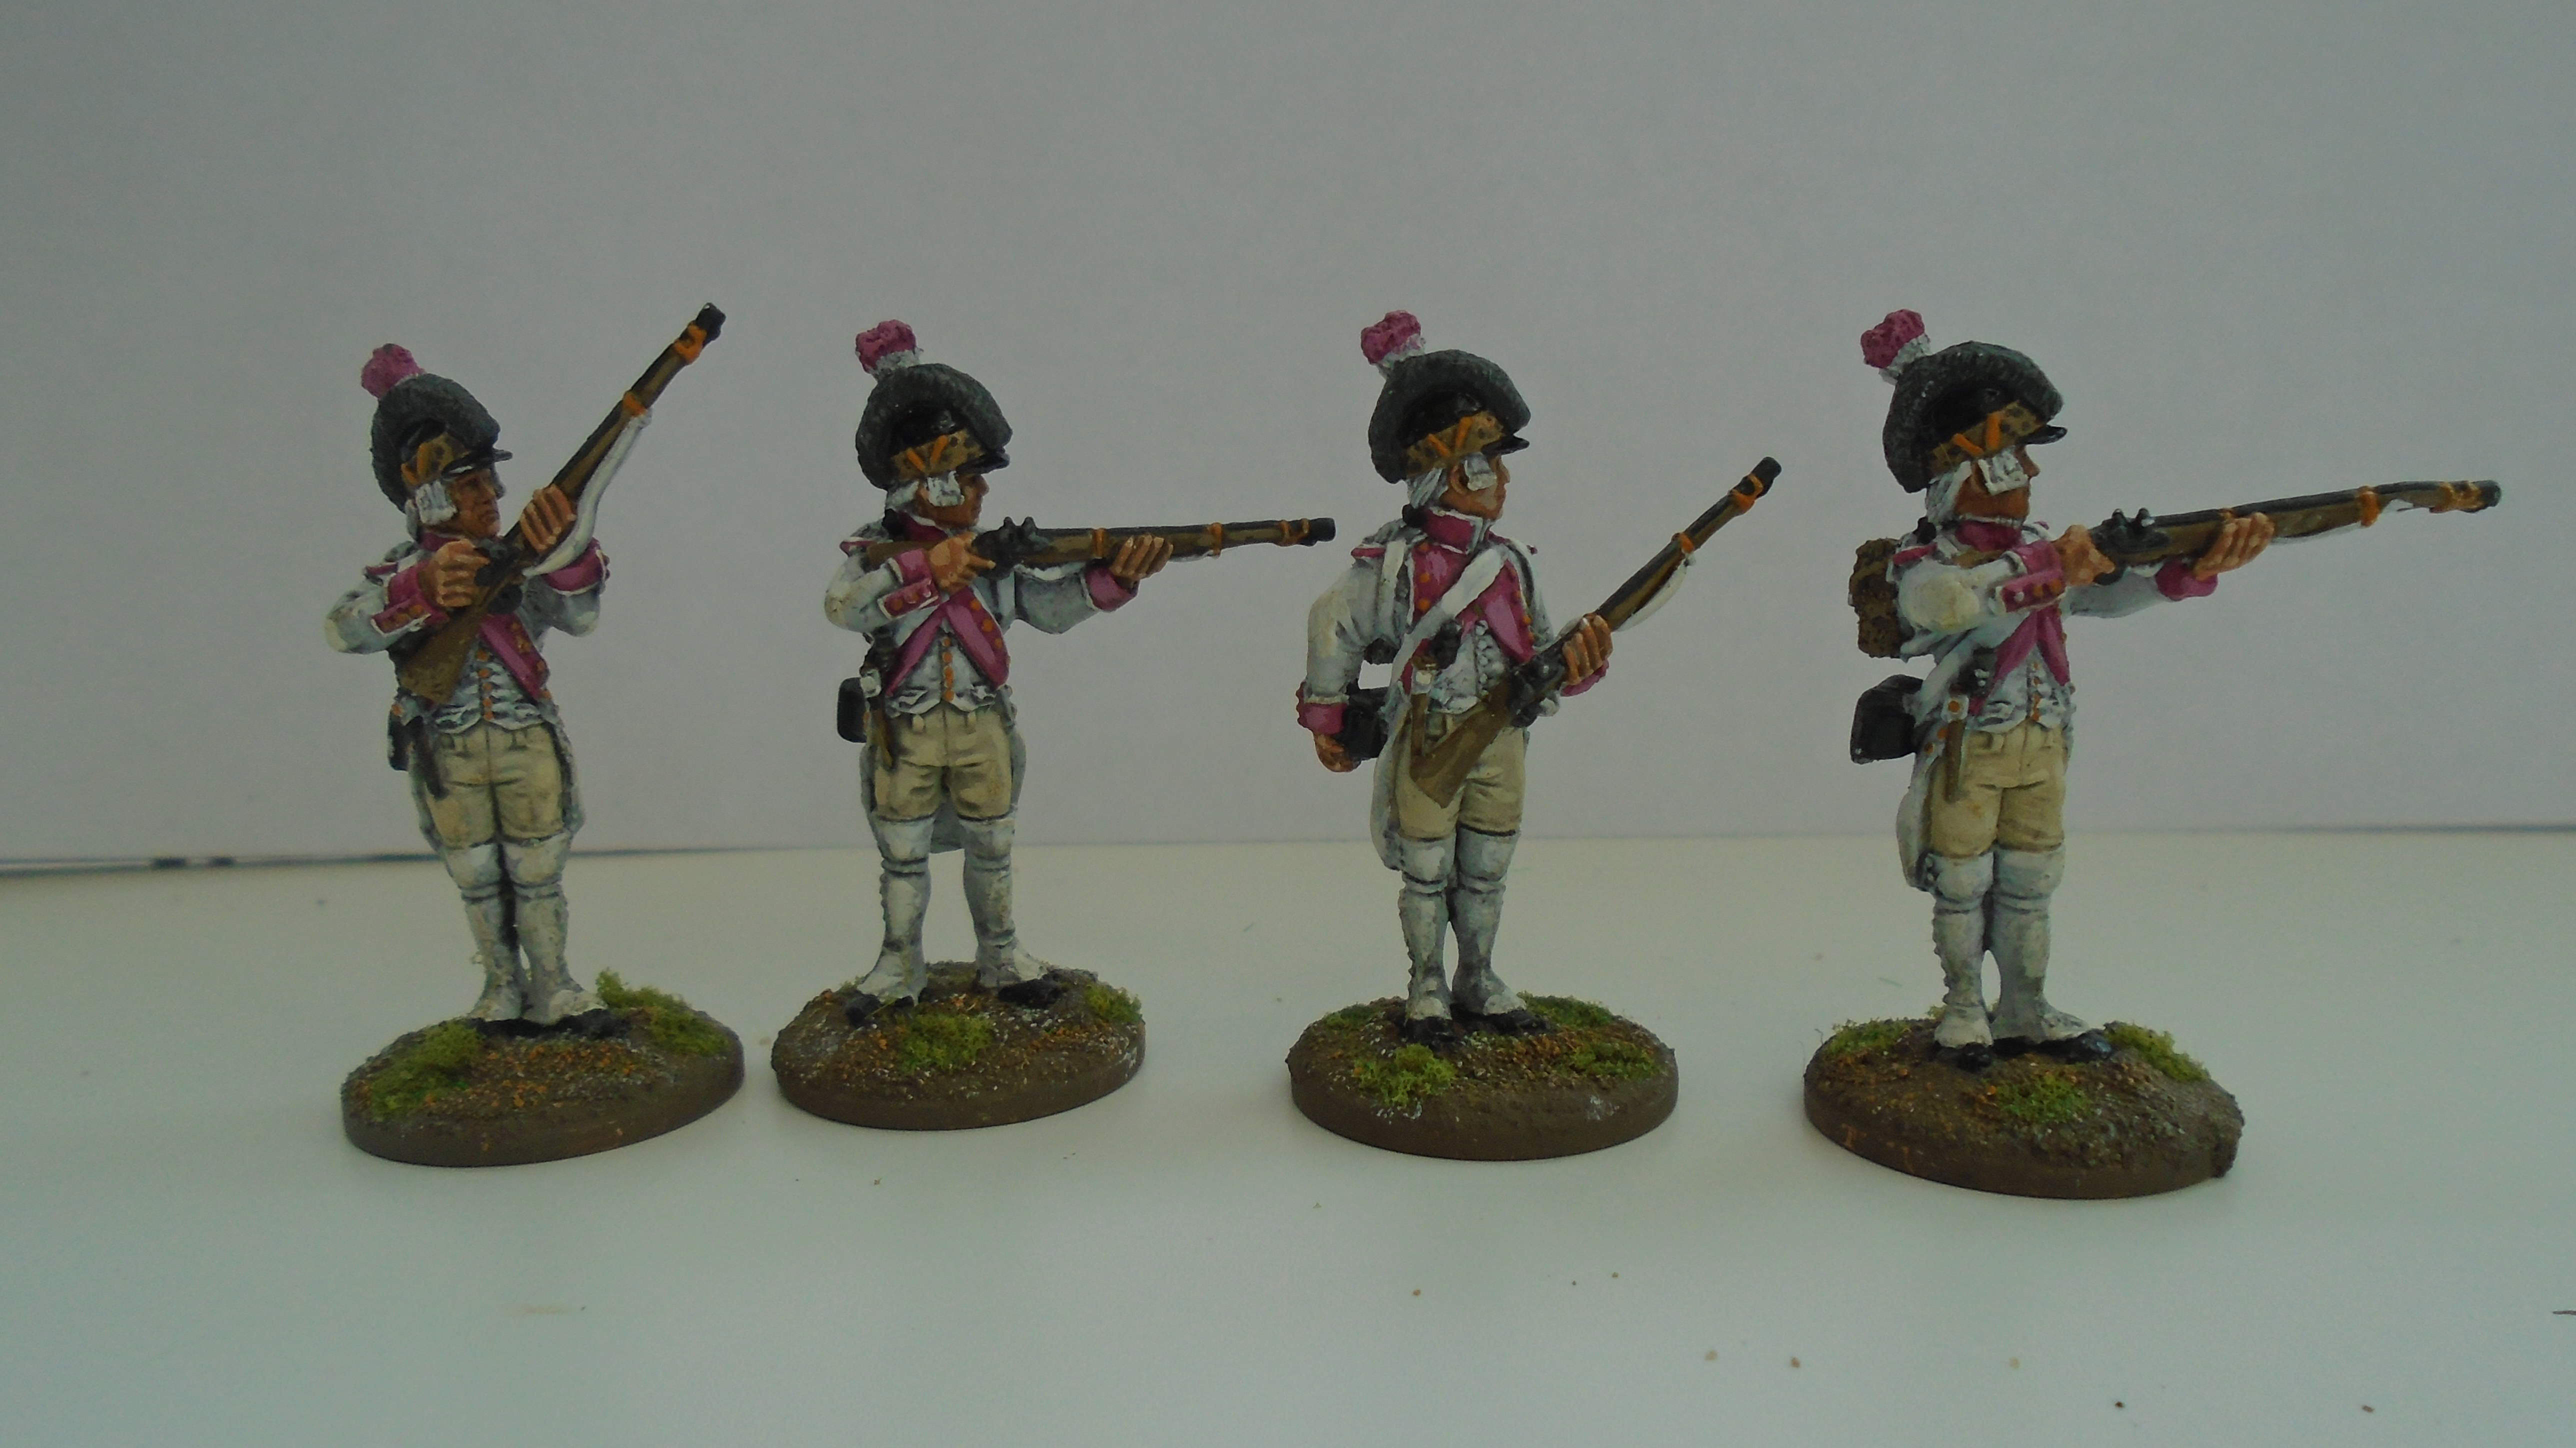 Firing line in casquette Soldiers of the Ancien Regime